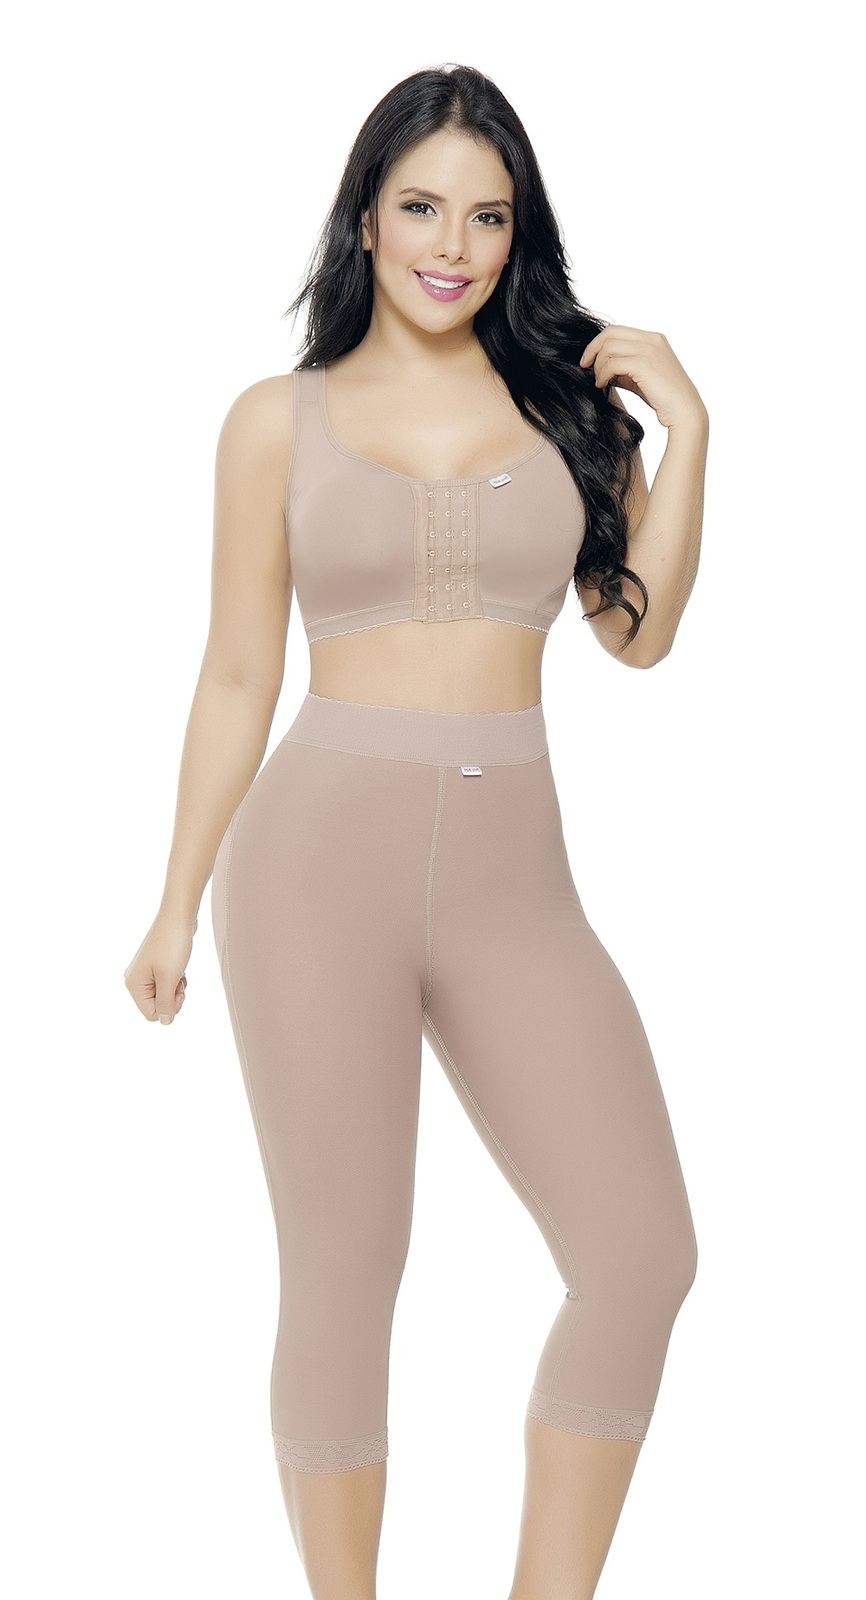 COCOON 1490 FAJA COLOMBIANA COMPLETE BODY SUIT WITH ZIPPER LACEY CONTROL